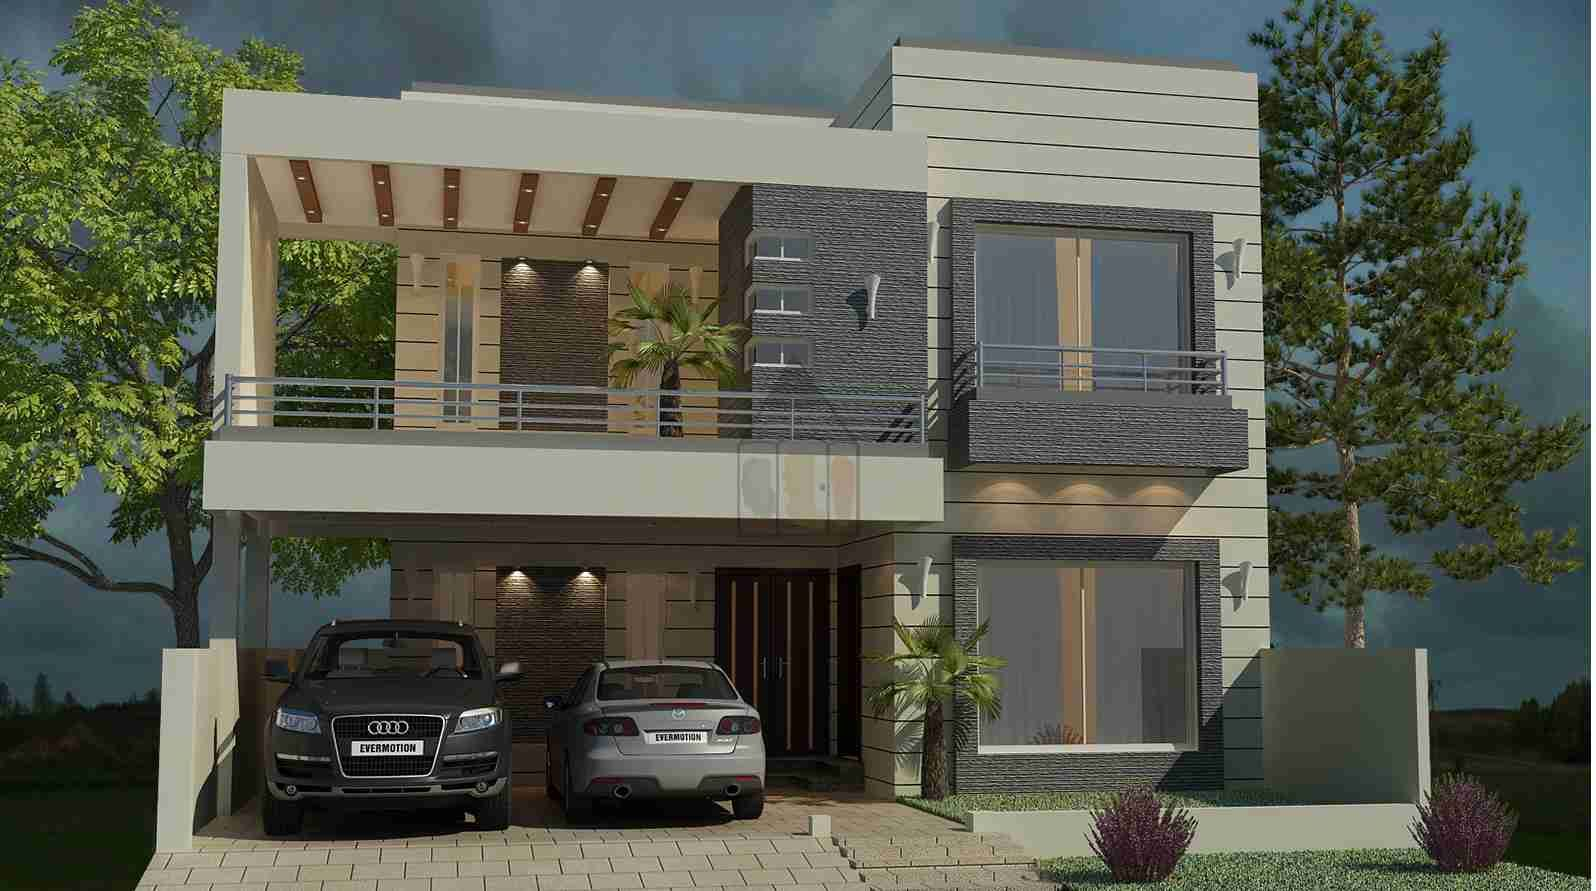 Beautiful 10 Marla House Plan As Its Layout Plan Is Designed On 3 Stories And On The Land Of 10 Marla Th House Layout Plans 10 Marla House Plan House Layouts